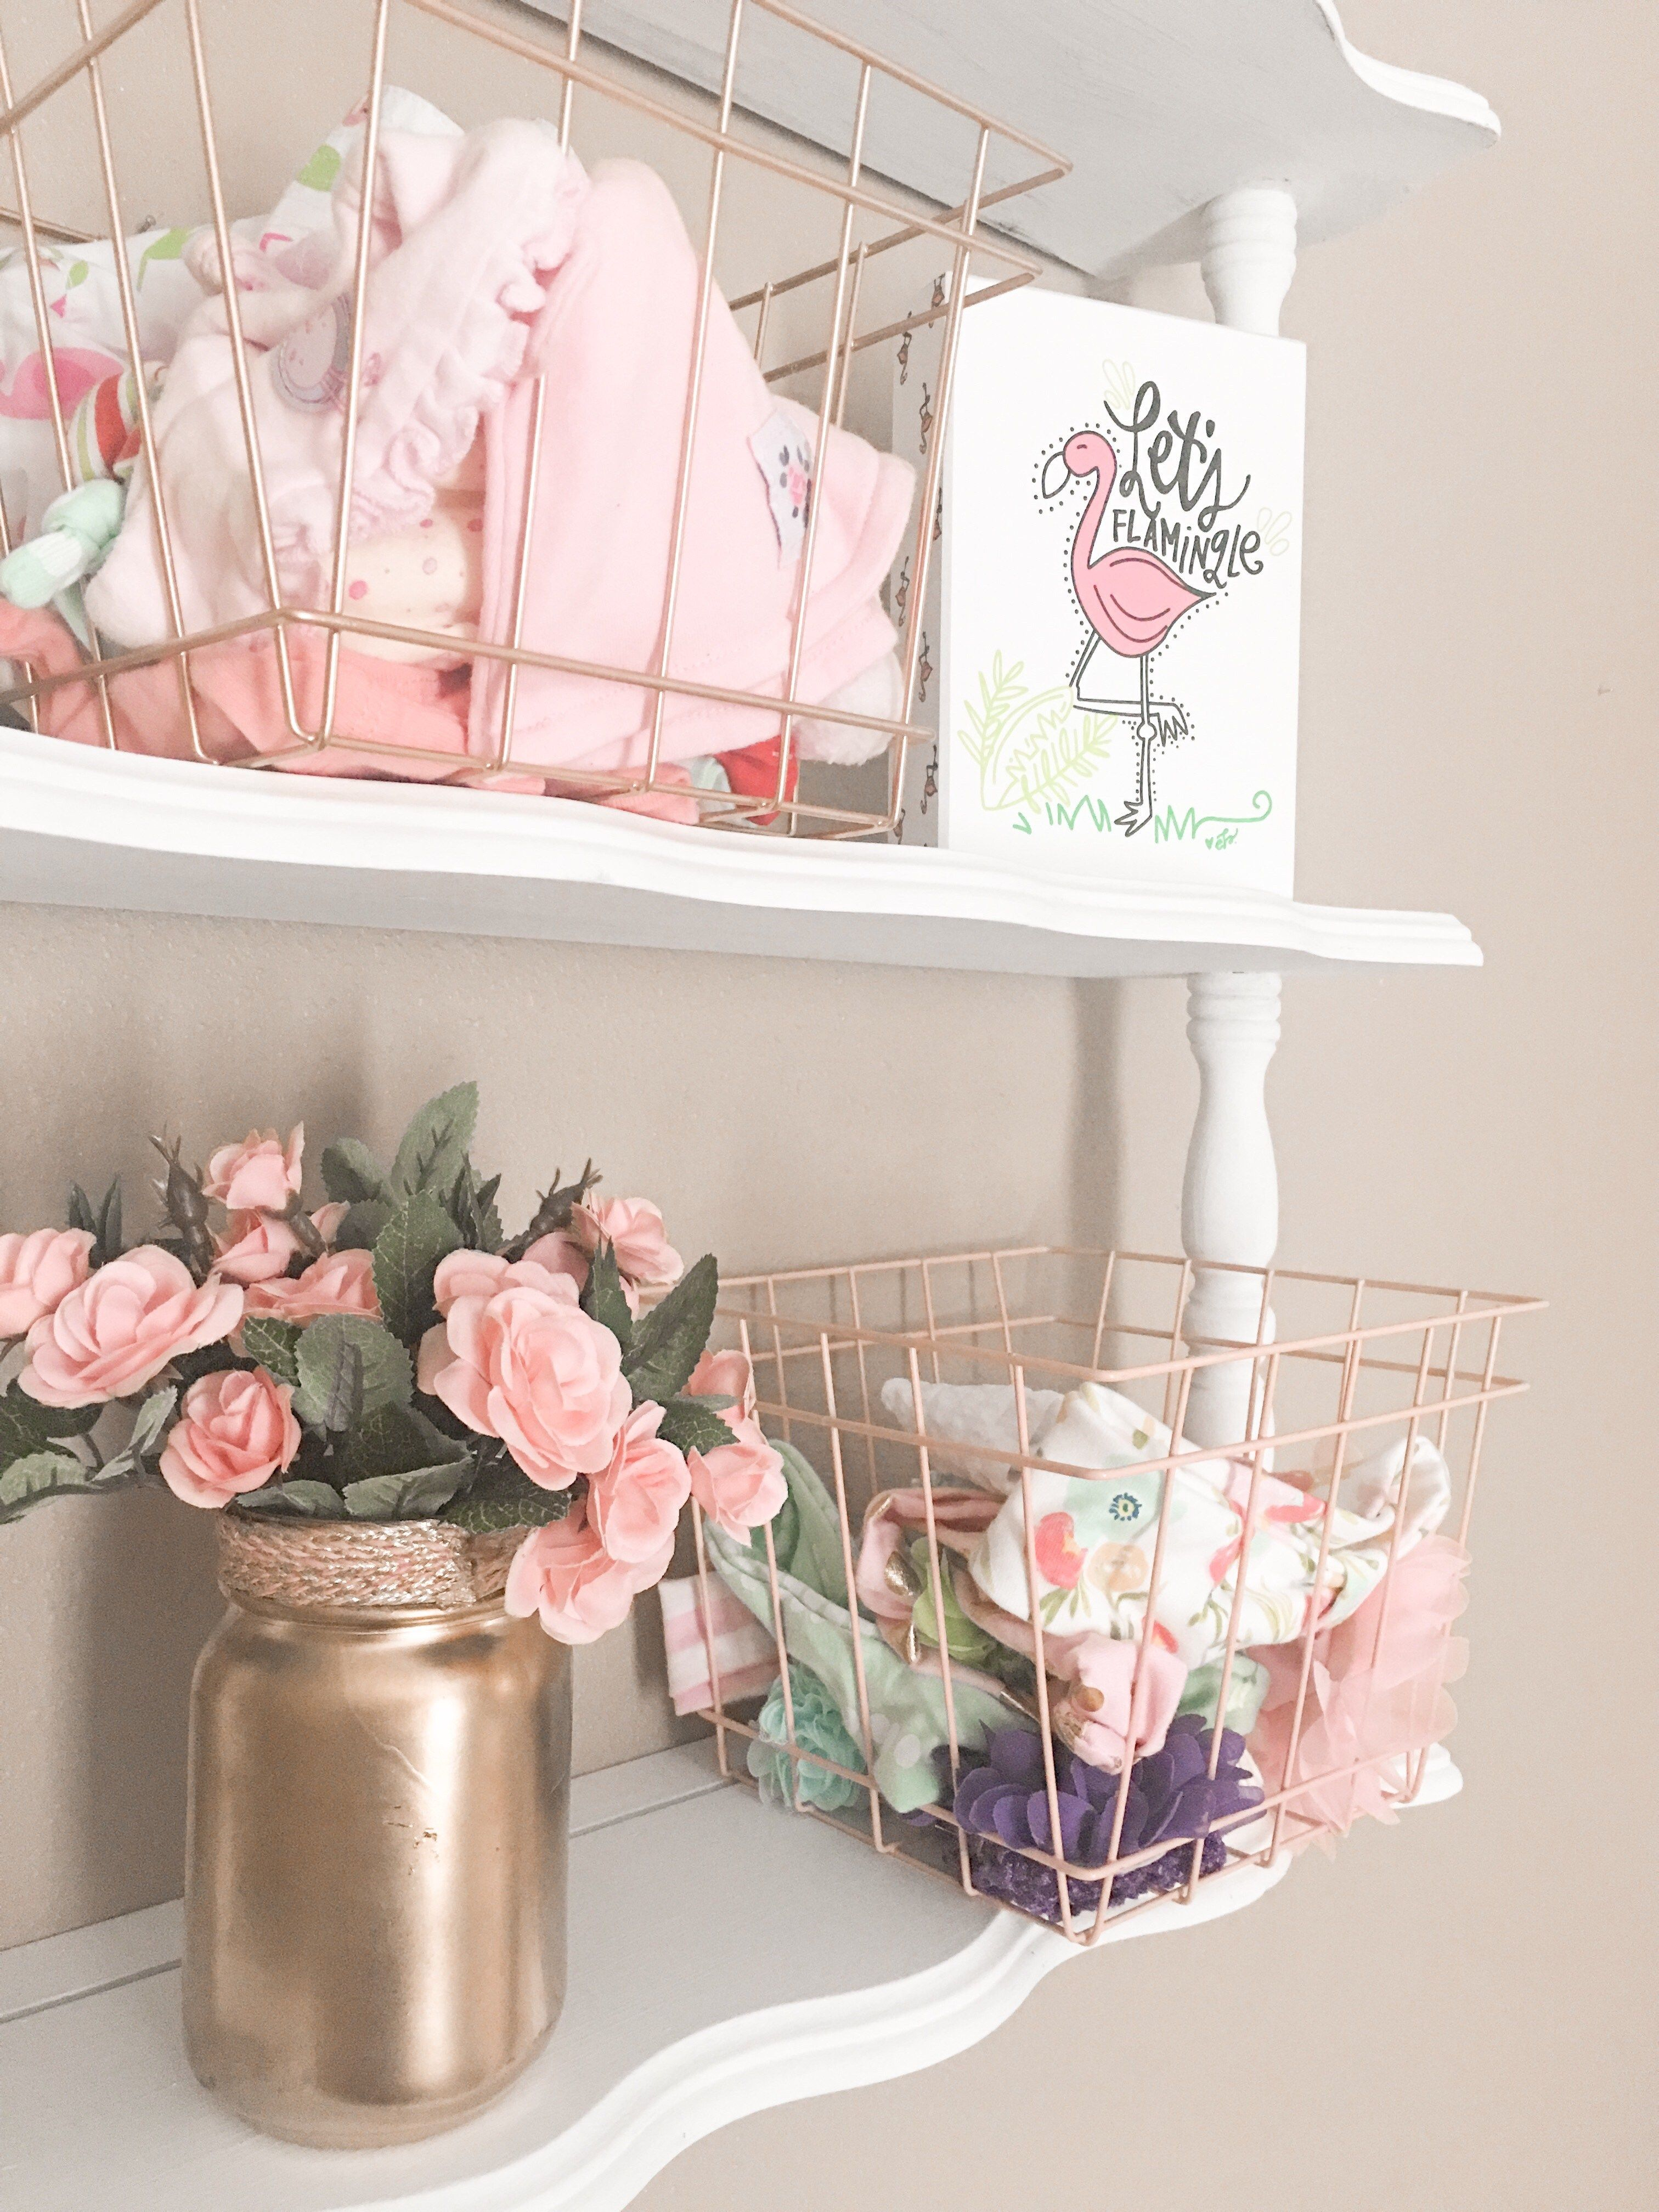 Goldie's Floral and Flamingo Nursery images